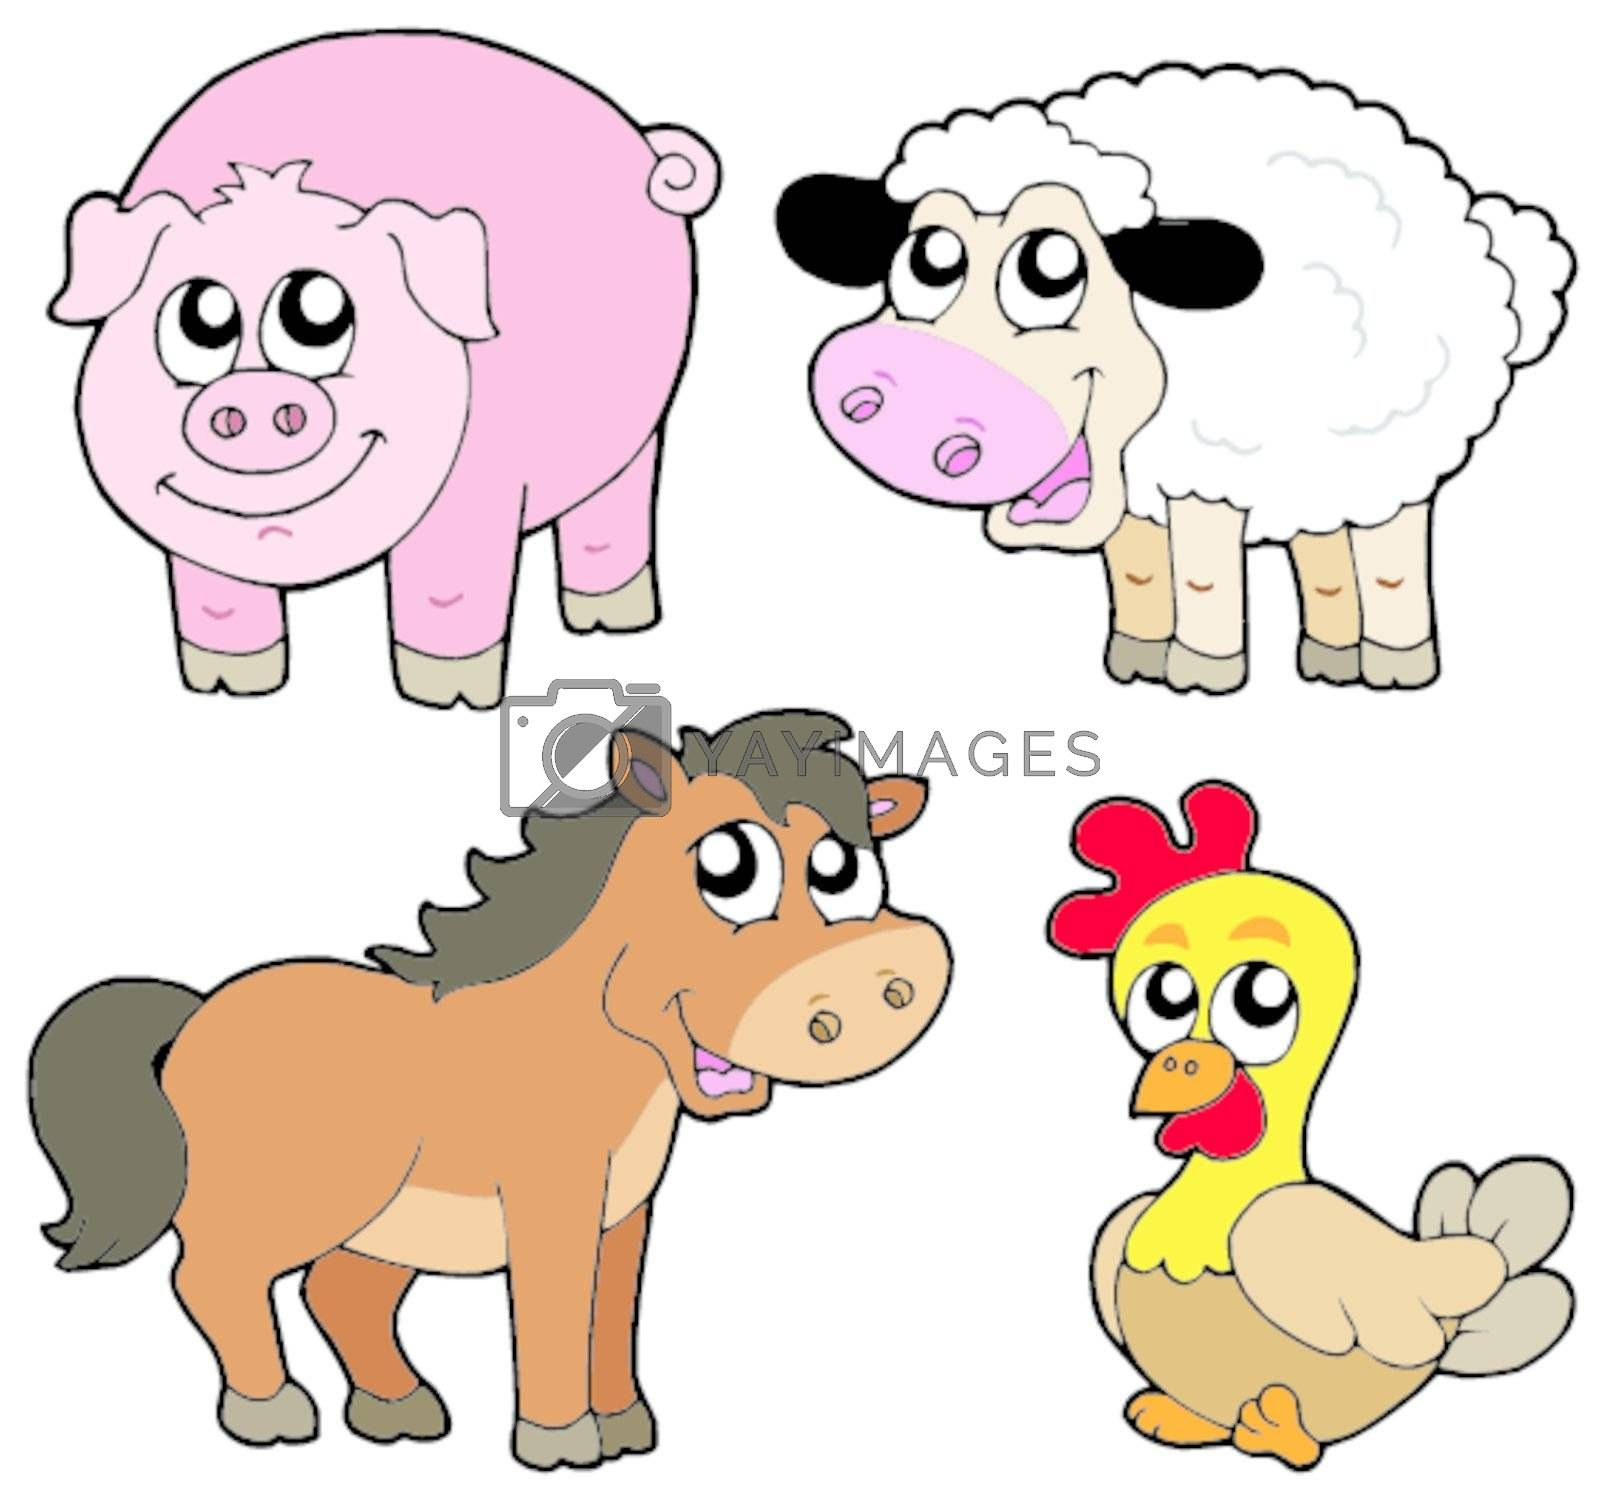 Cute country animals collection - vector illustration.